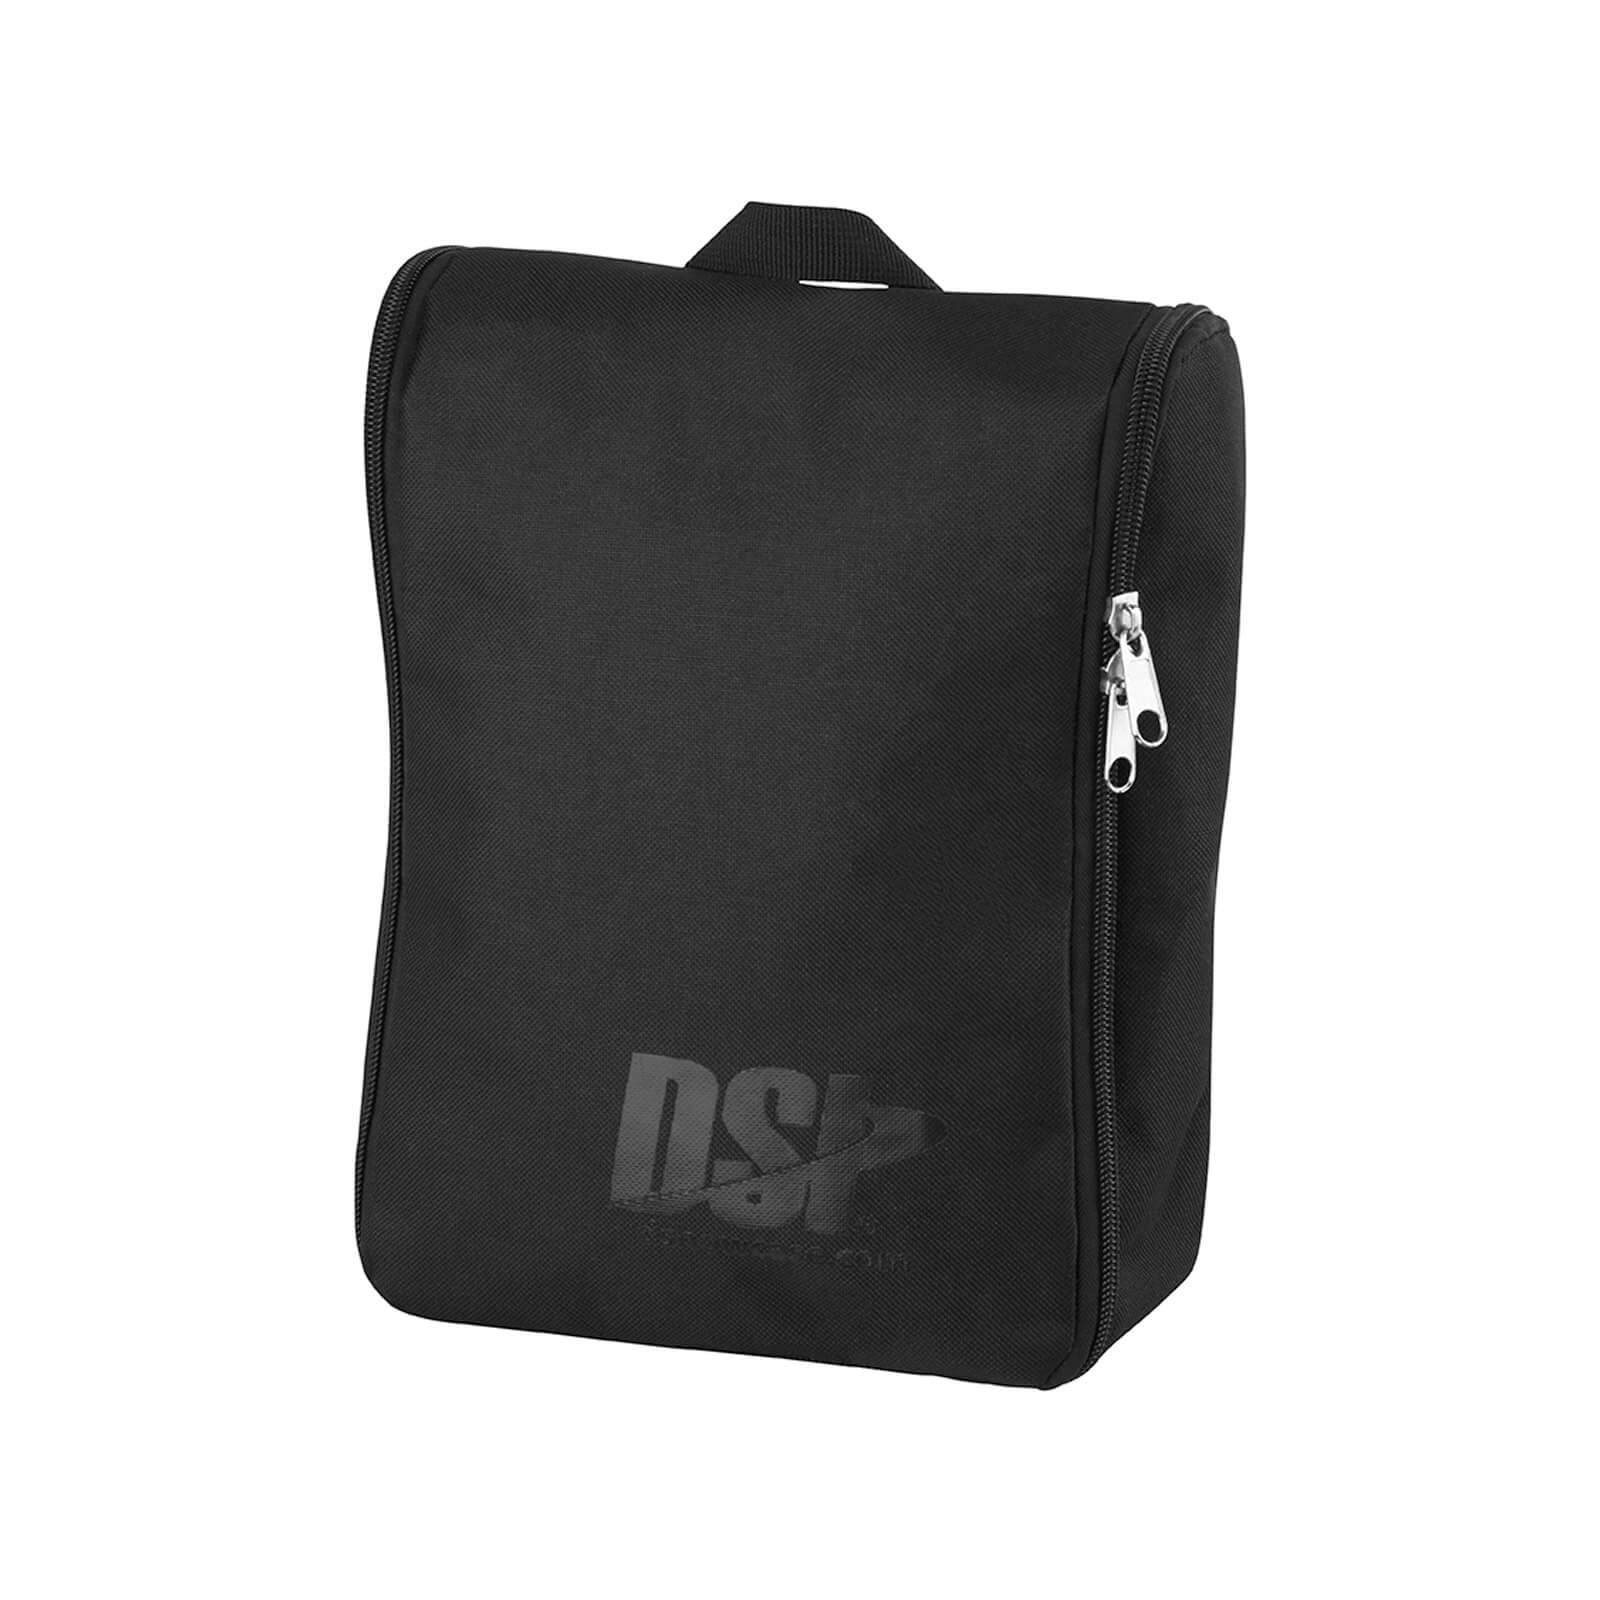 DSI Makeup and Accessory Bag